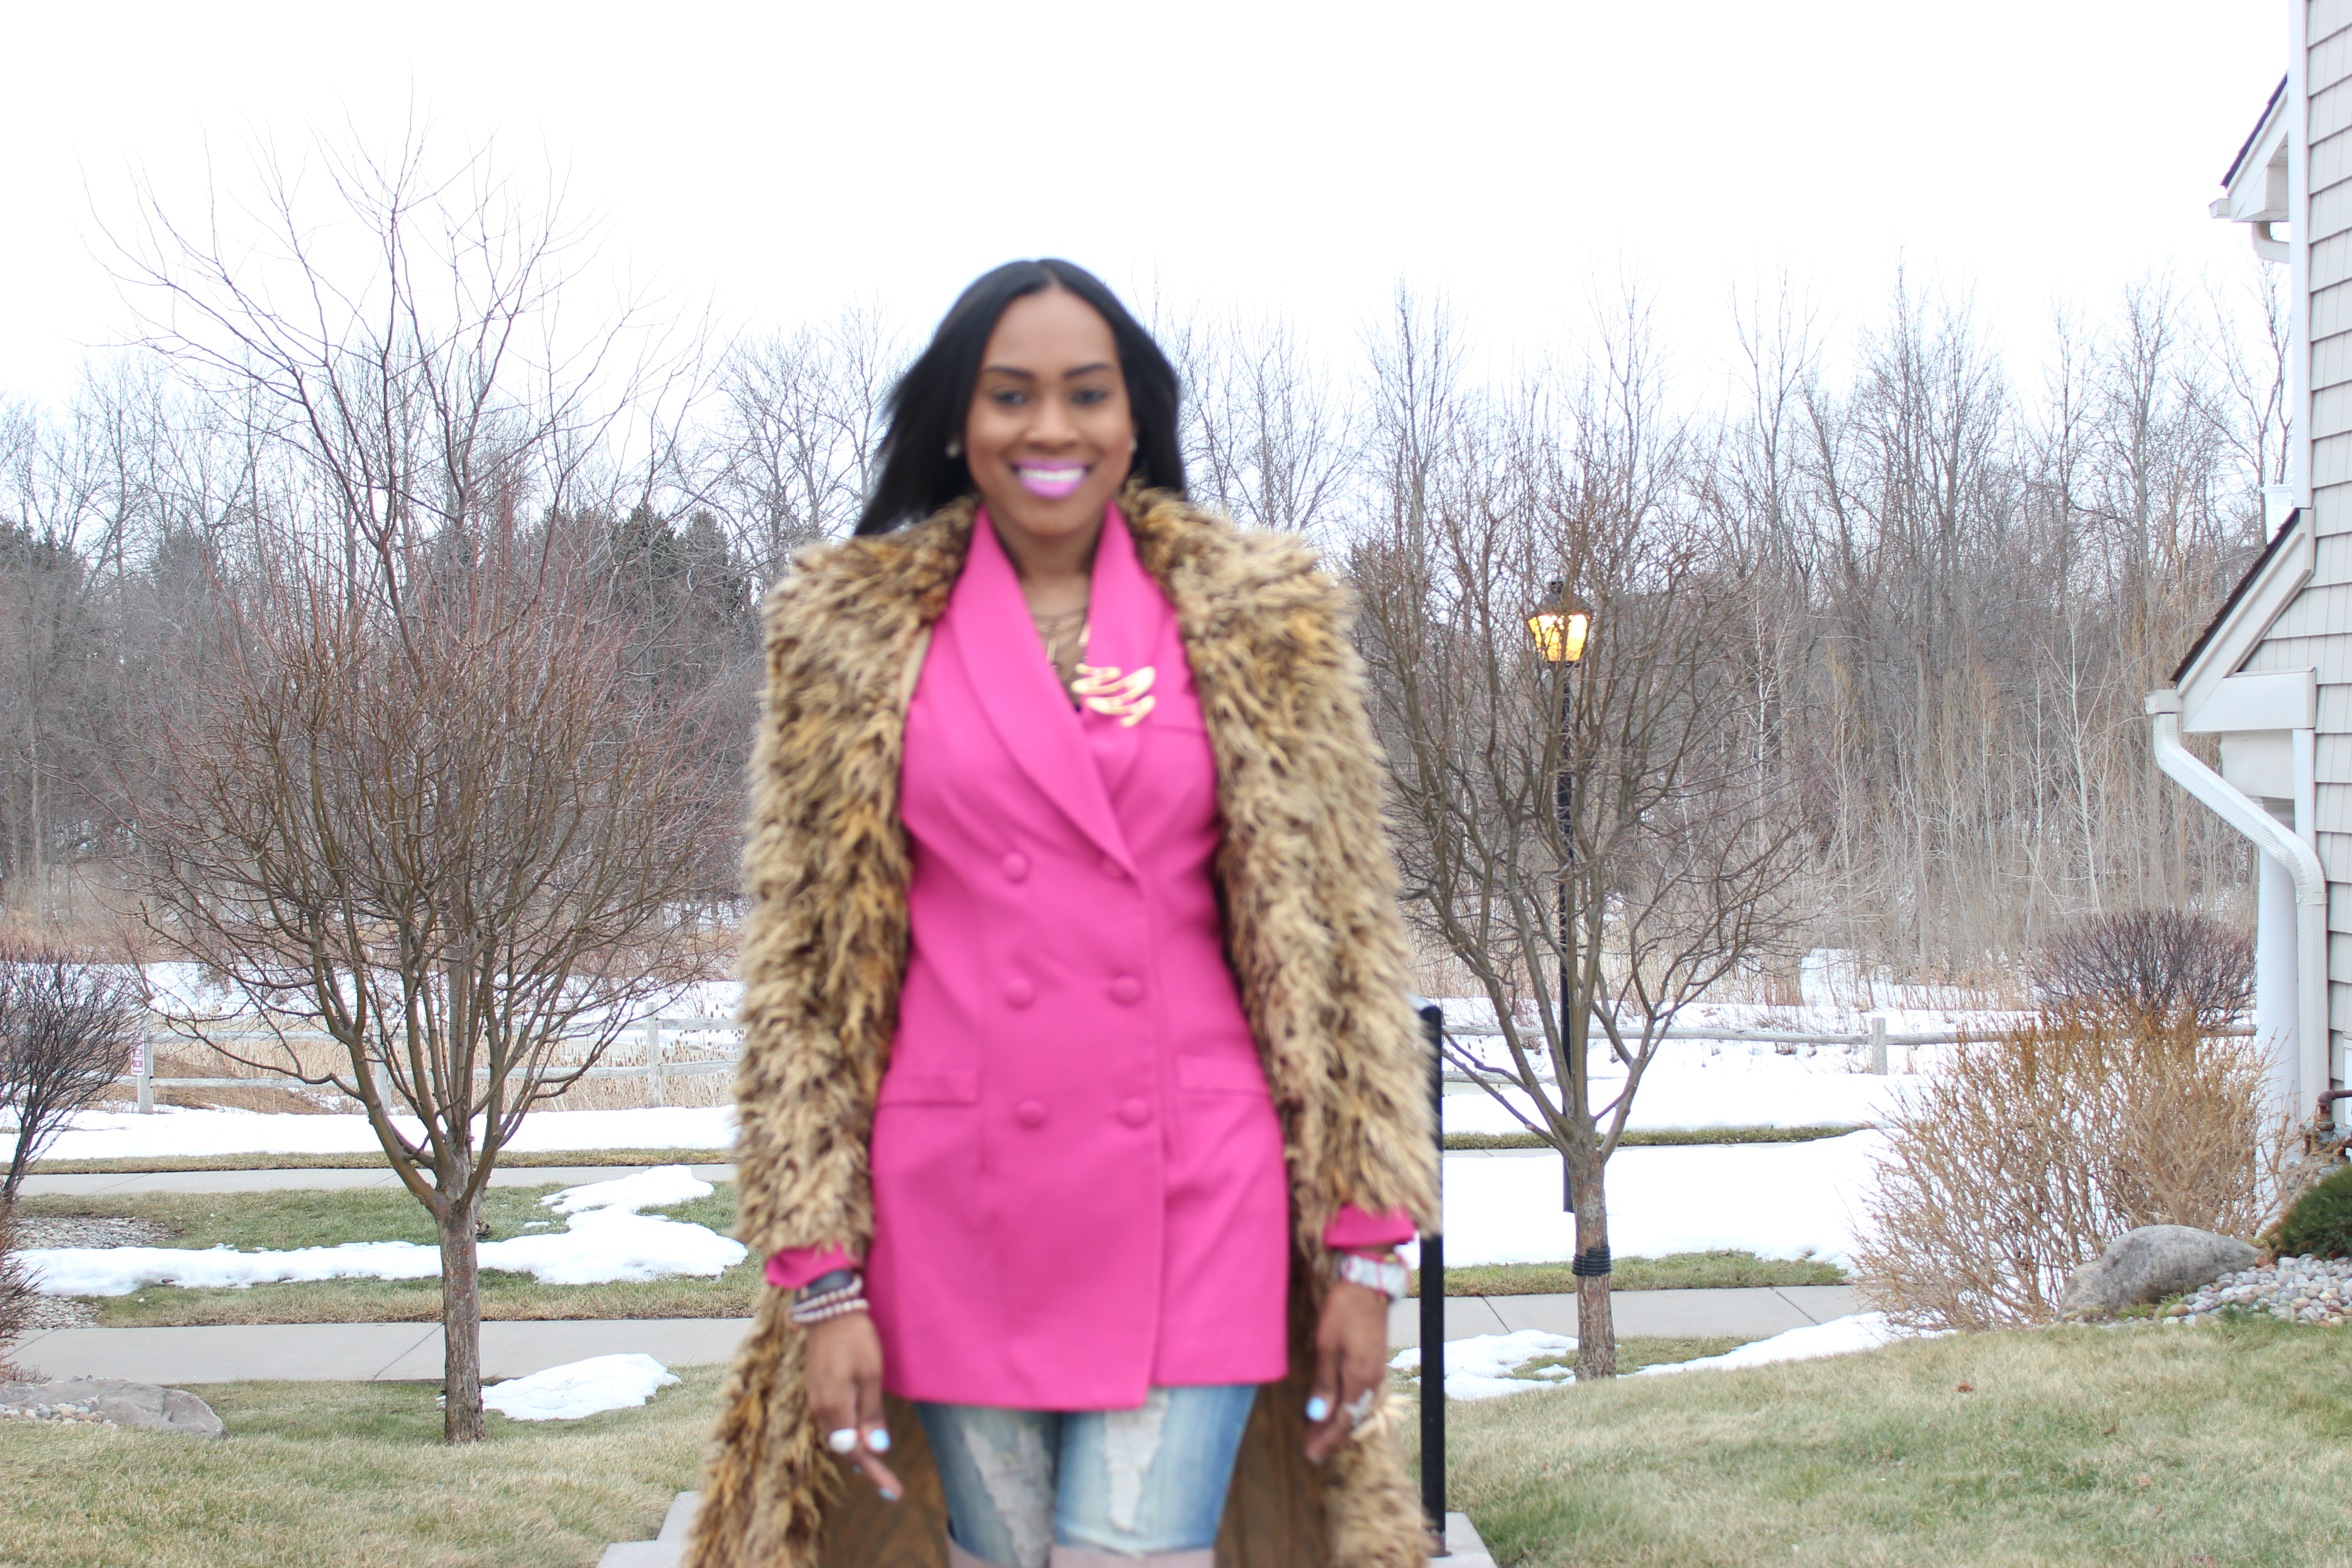 Style-Files-Hot-Pink-Blazer-Distessed-Jeans-Just-fav-over-the-knee-boots-bebe-shaggy-chic-coat-Pretty-Price-8